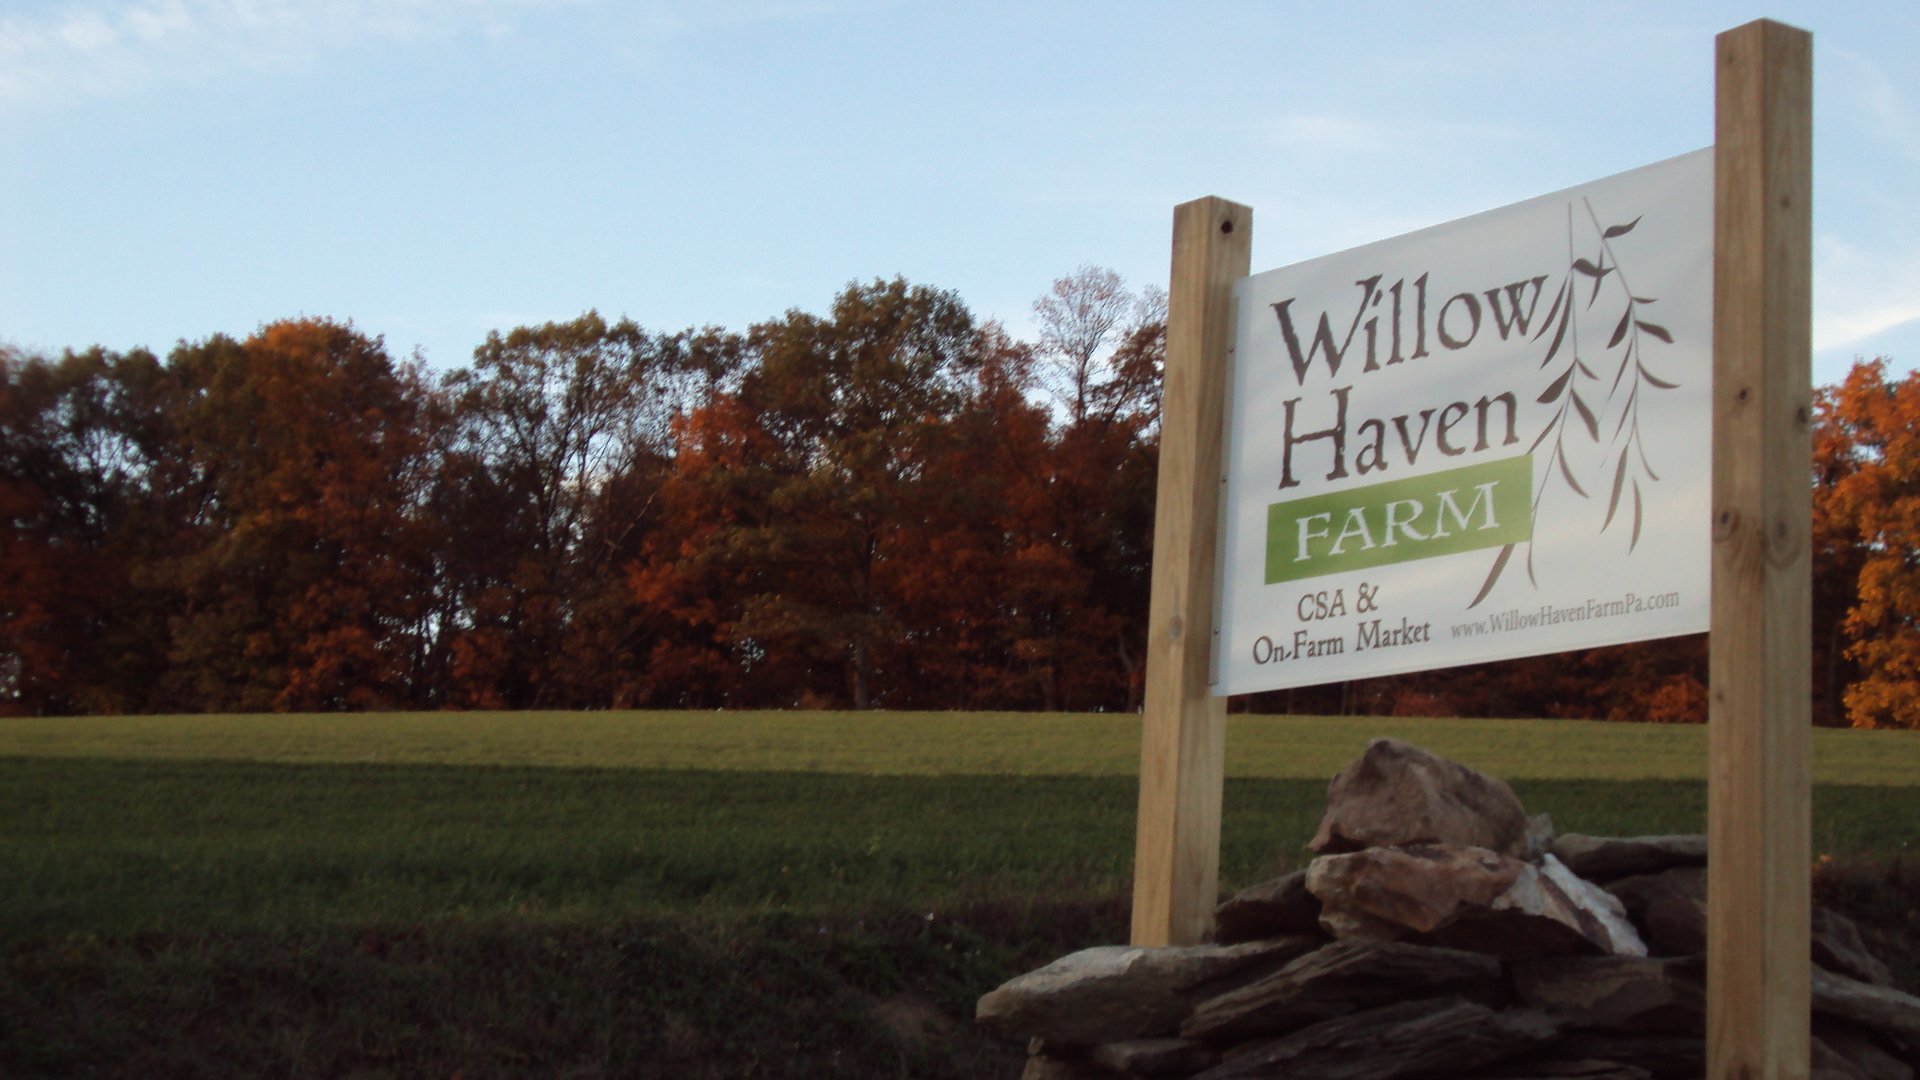 Upcoming Farm Tours, fresh veggies available all Fall, sweet potato soup recipe & more